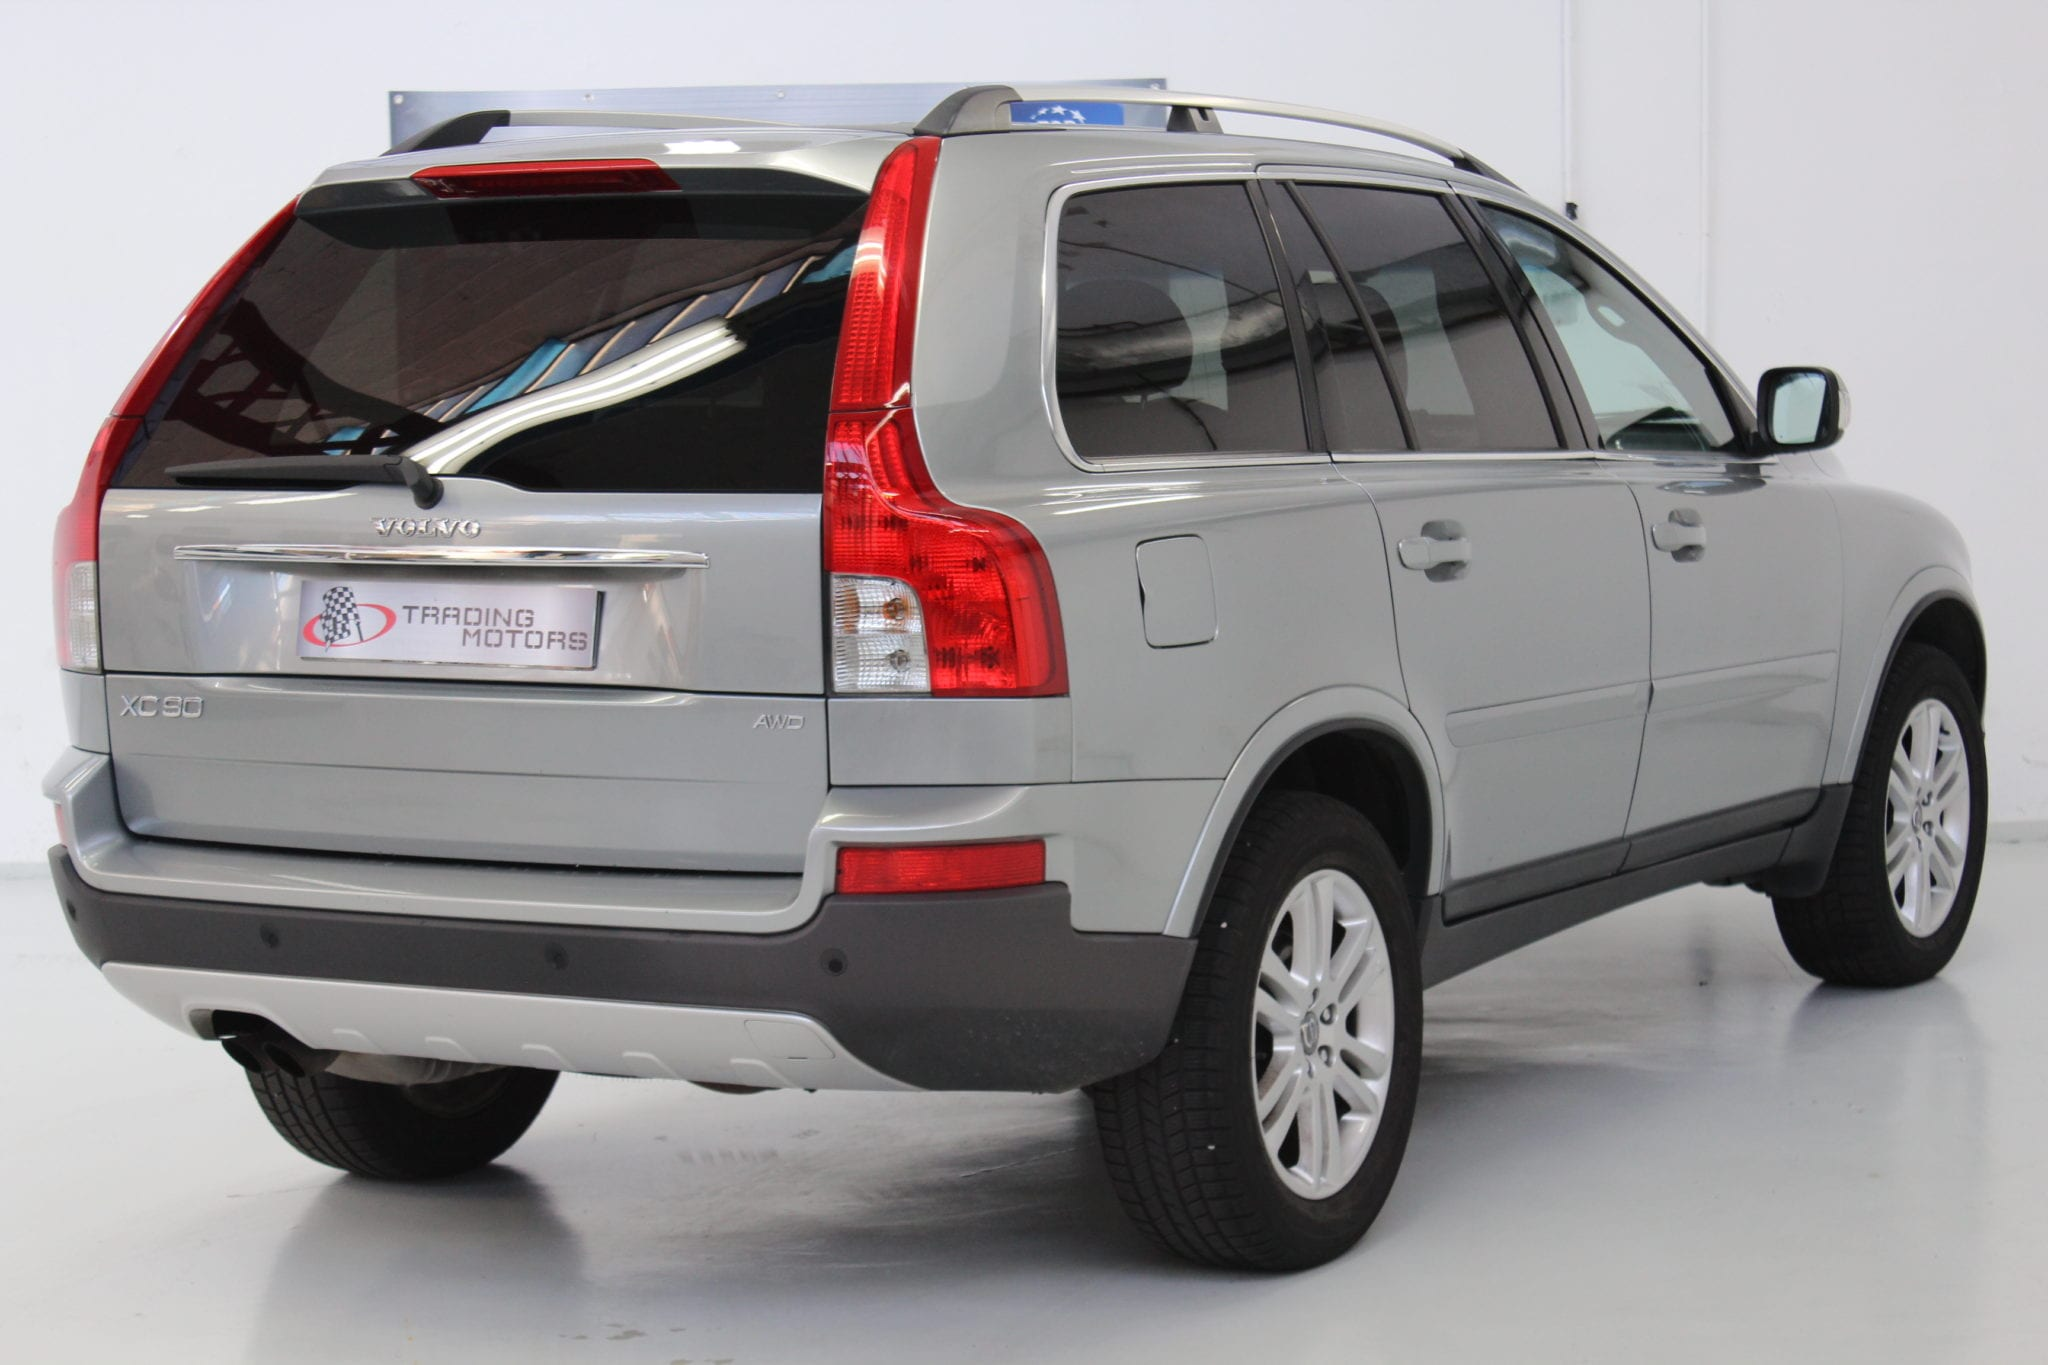 volvo XC90 2.5D 7 places - Image 5